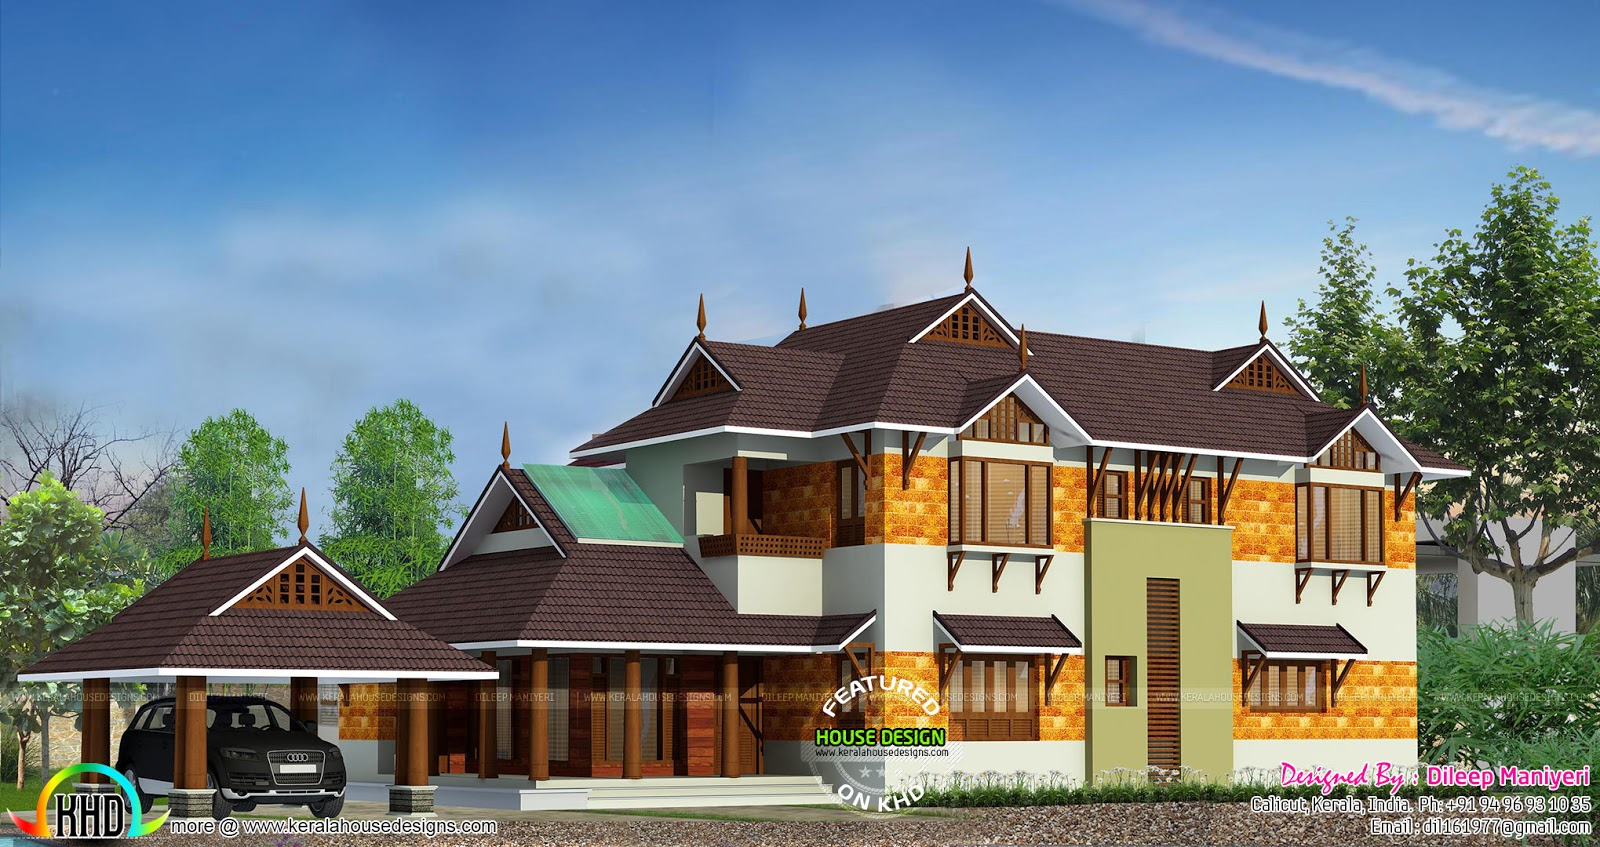 2808 sq-ft 4 bedroom house architecture | Kerala home design